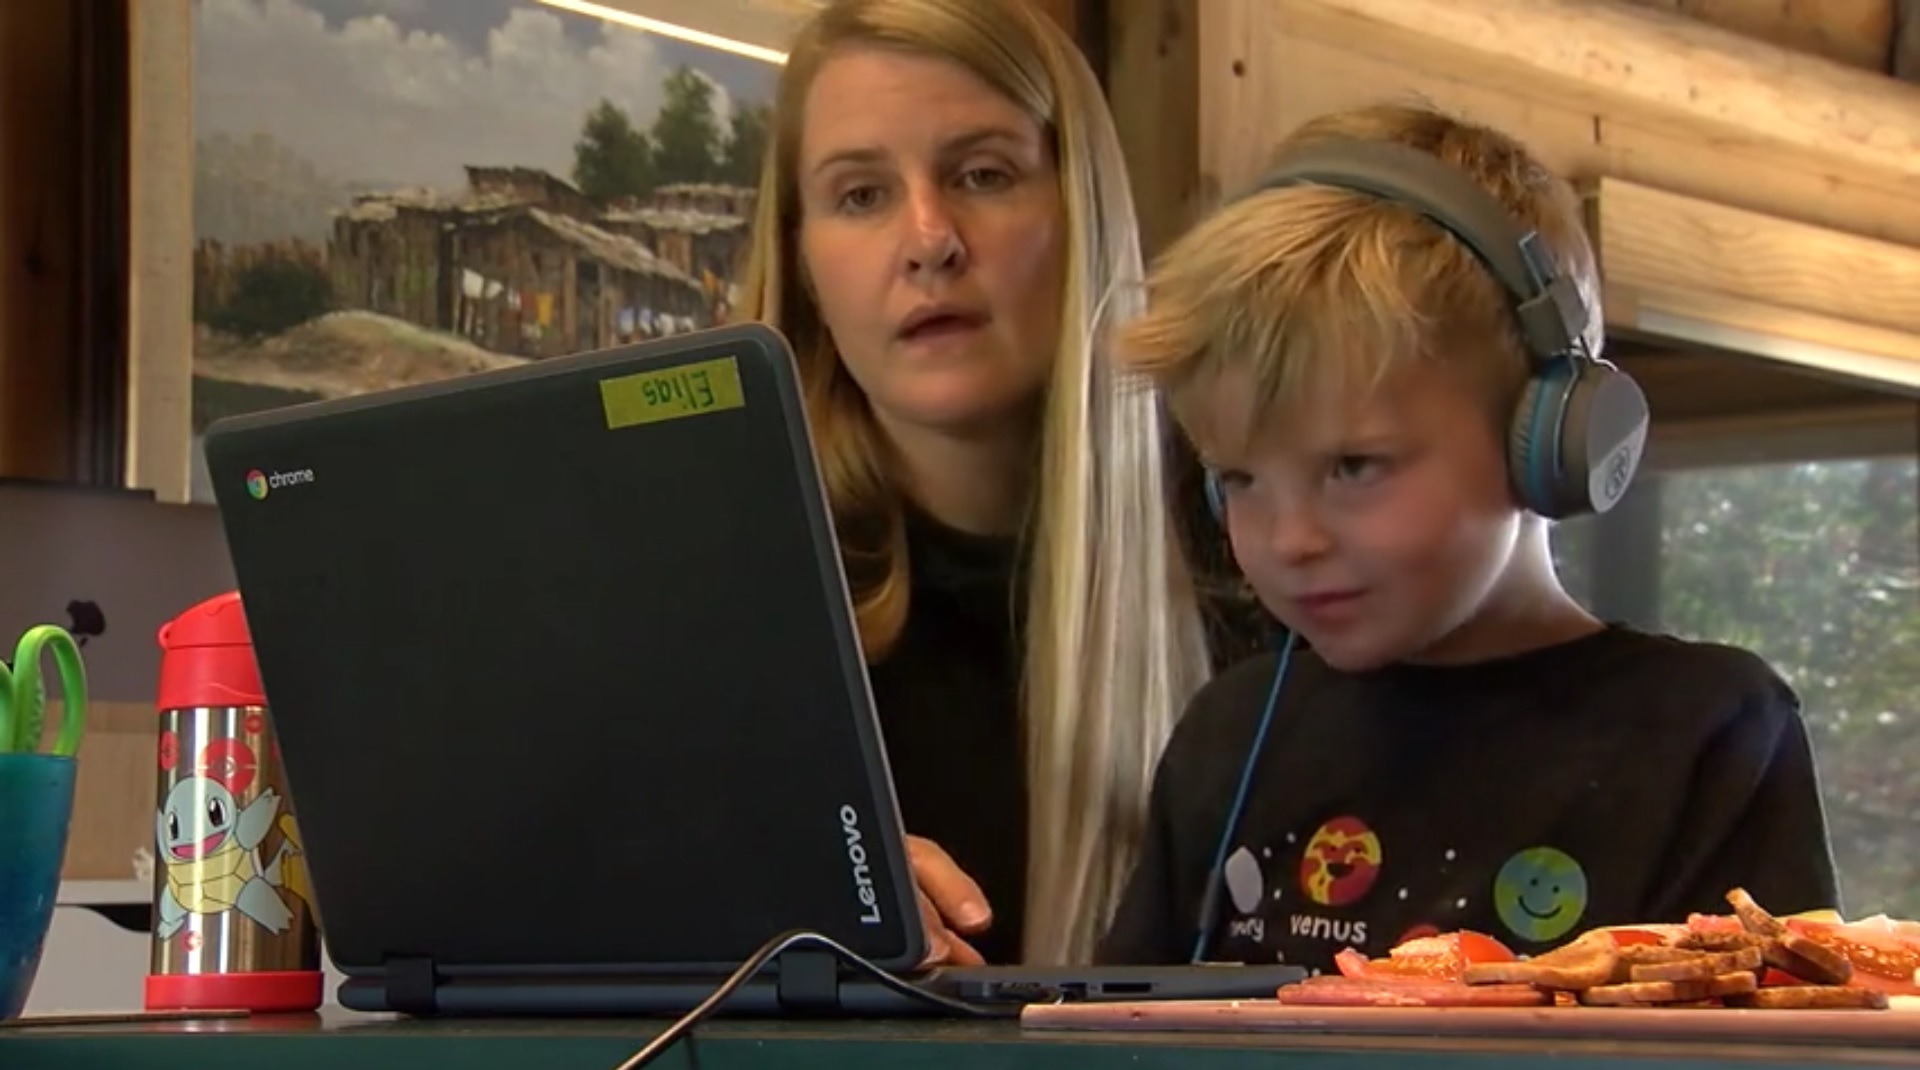 Erika Beers and her son work on online schooling (WHTM Photo)